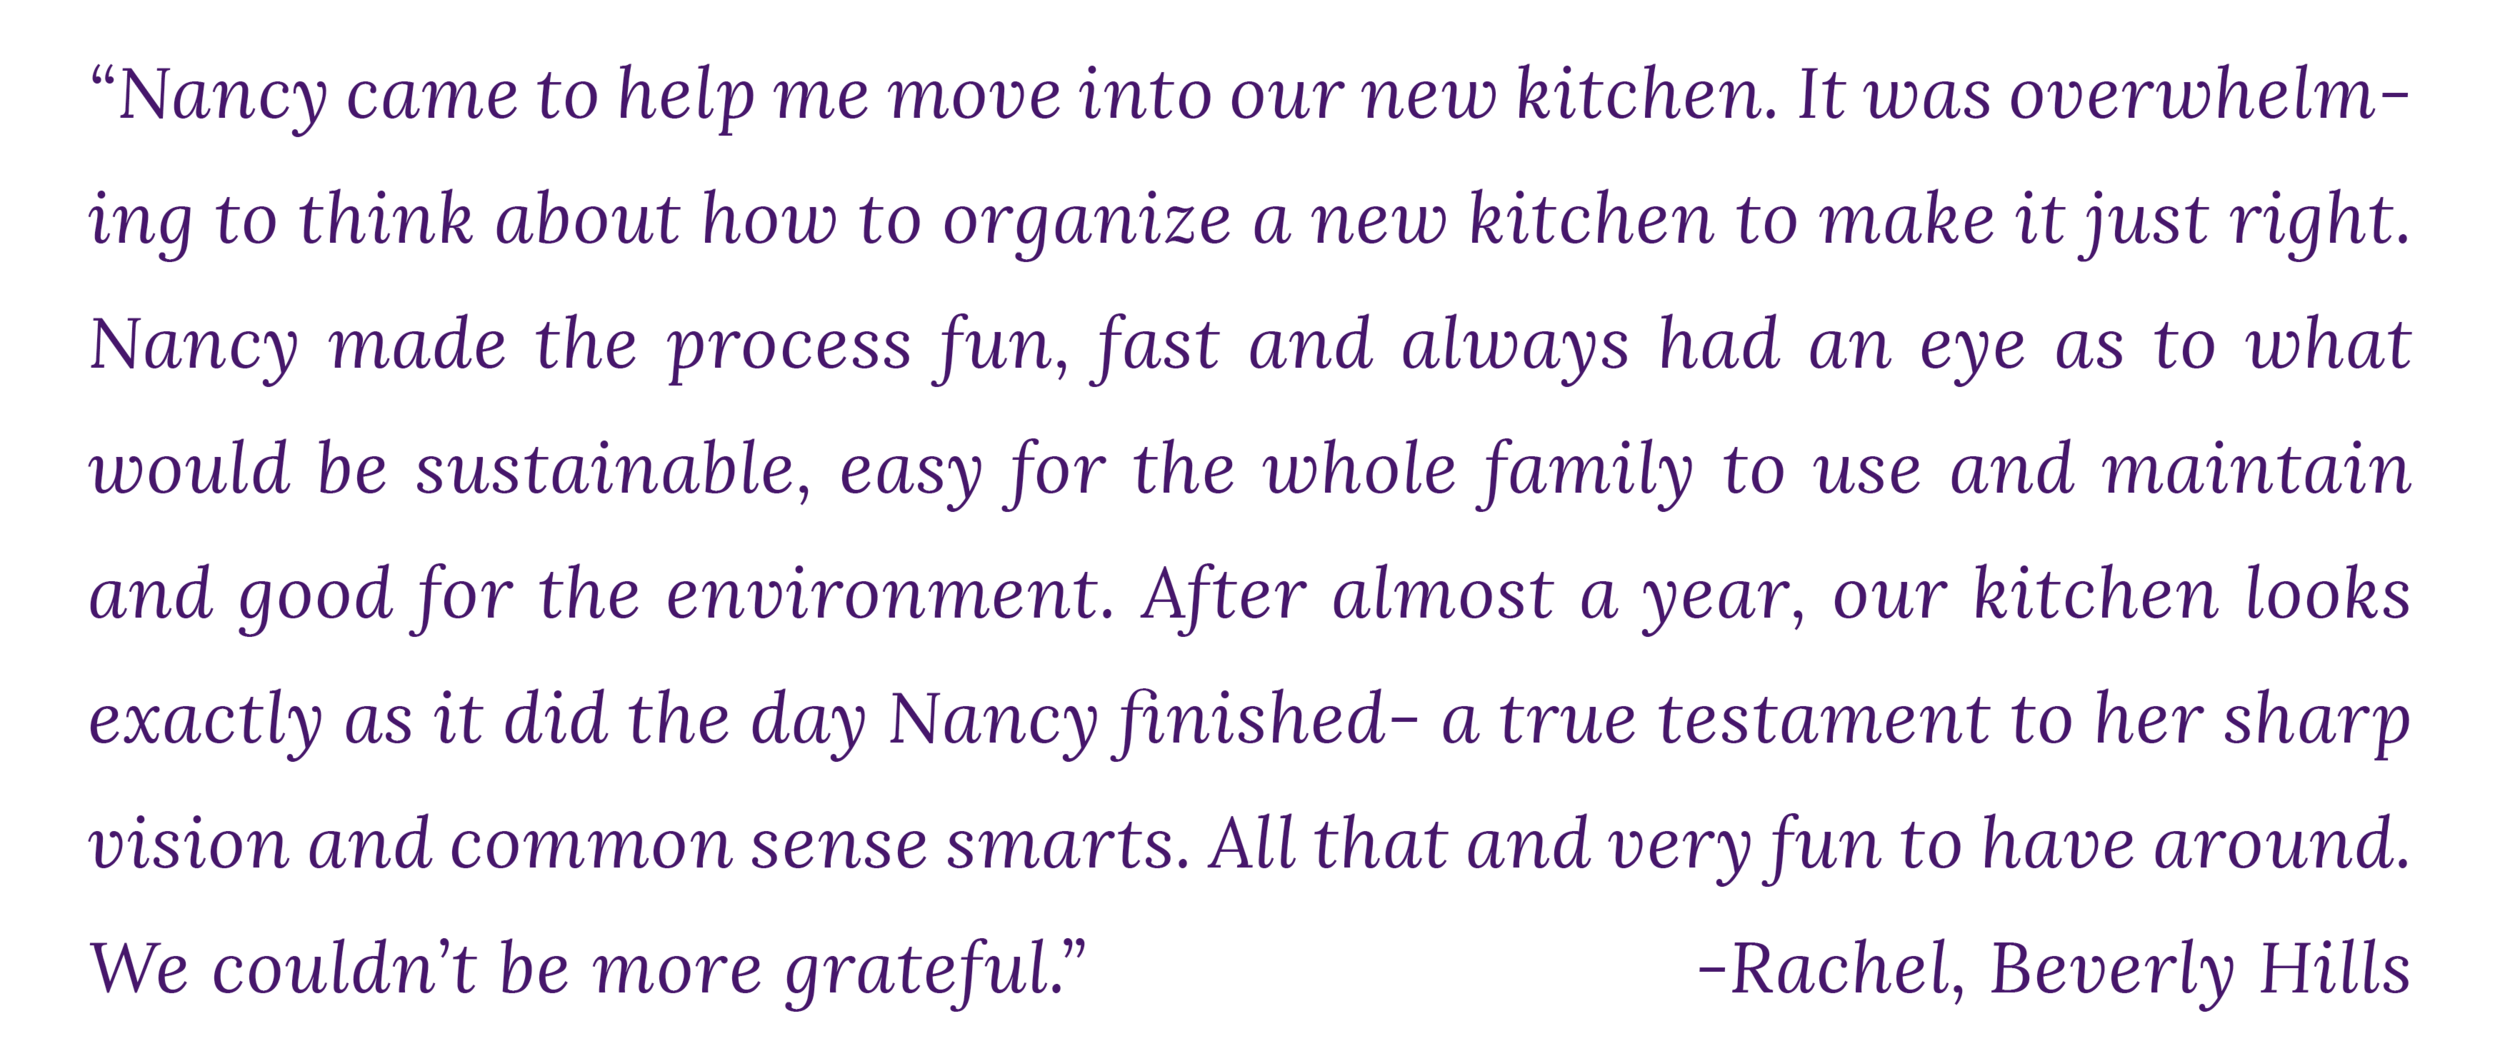 Kitchens_WebsiteTestimonials3.png